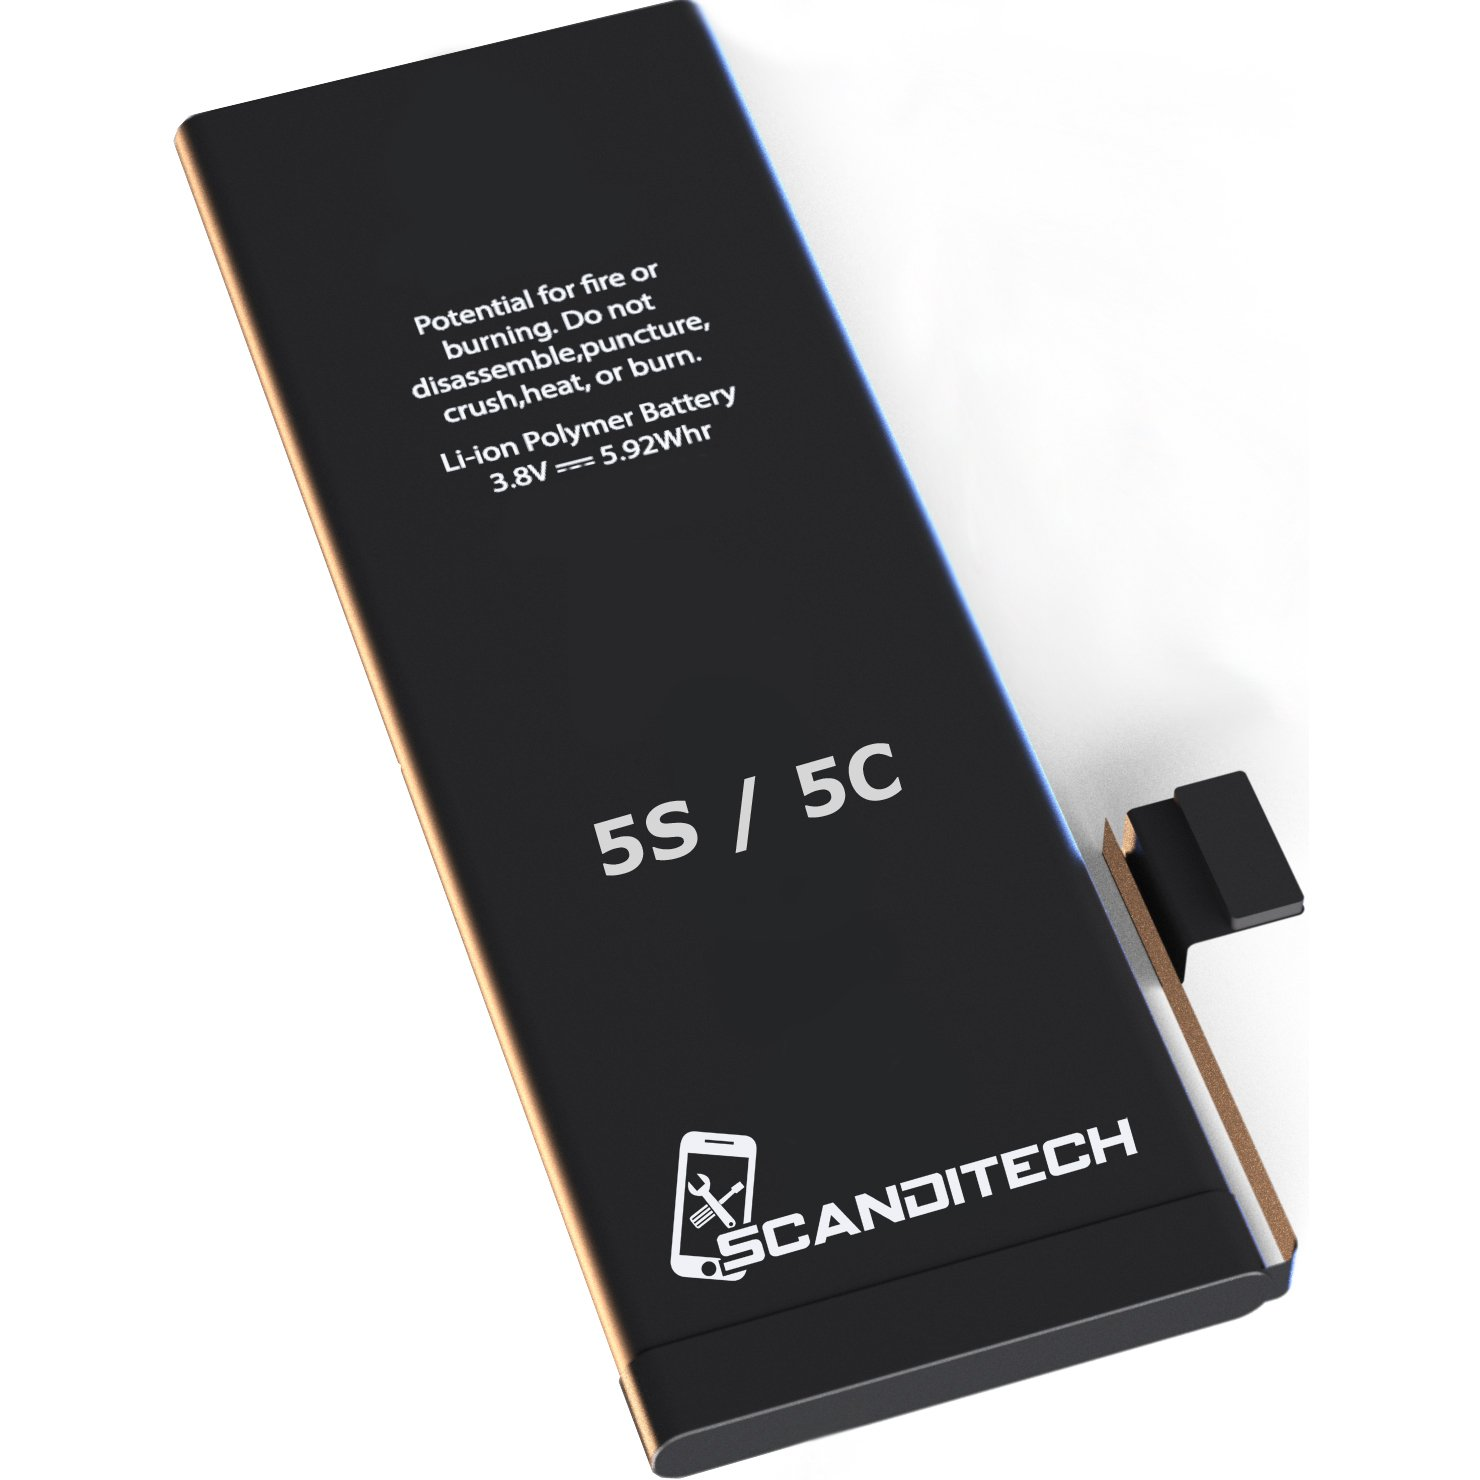 ScandiTech Battery Model iP5S-5C - with Adhesive & Instructions (no Tools) - New 1550 mAh 0 Cycle Replacement Battery - Repair Your Phone in 15 min - 1 Year Warranty